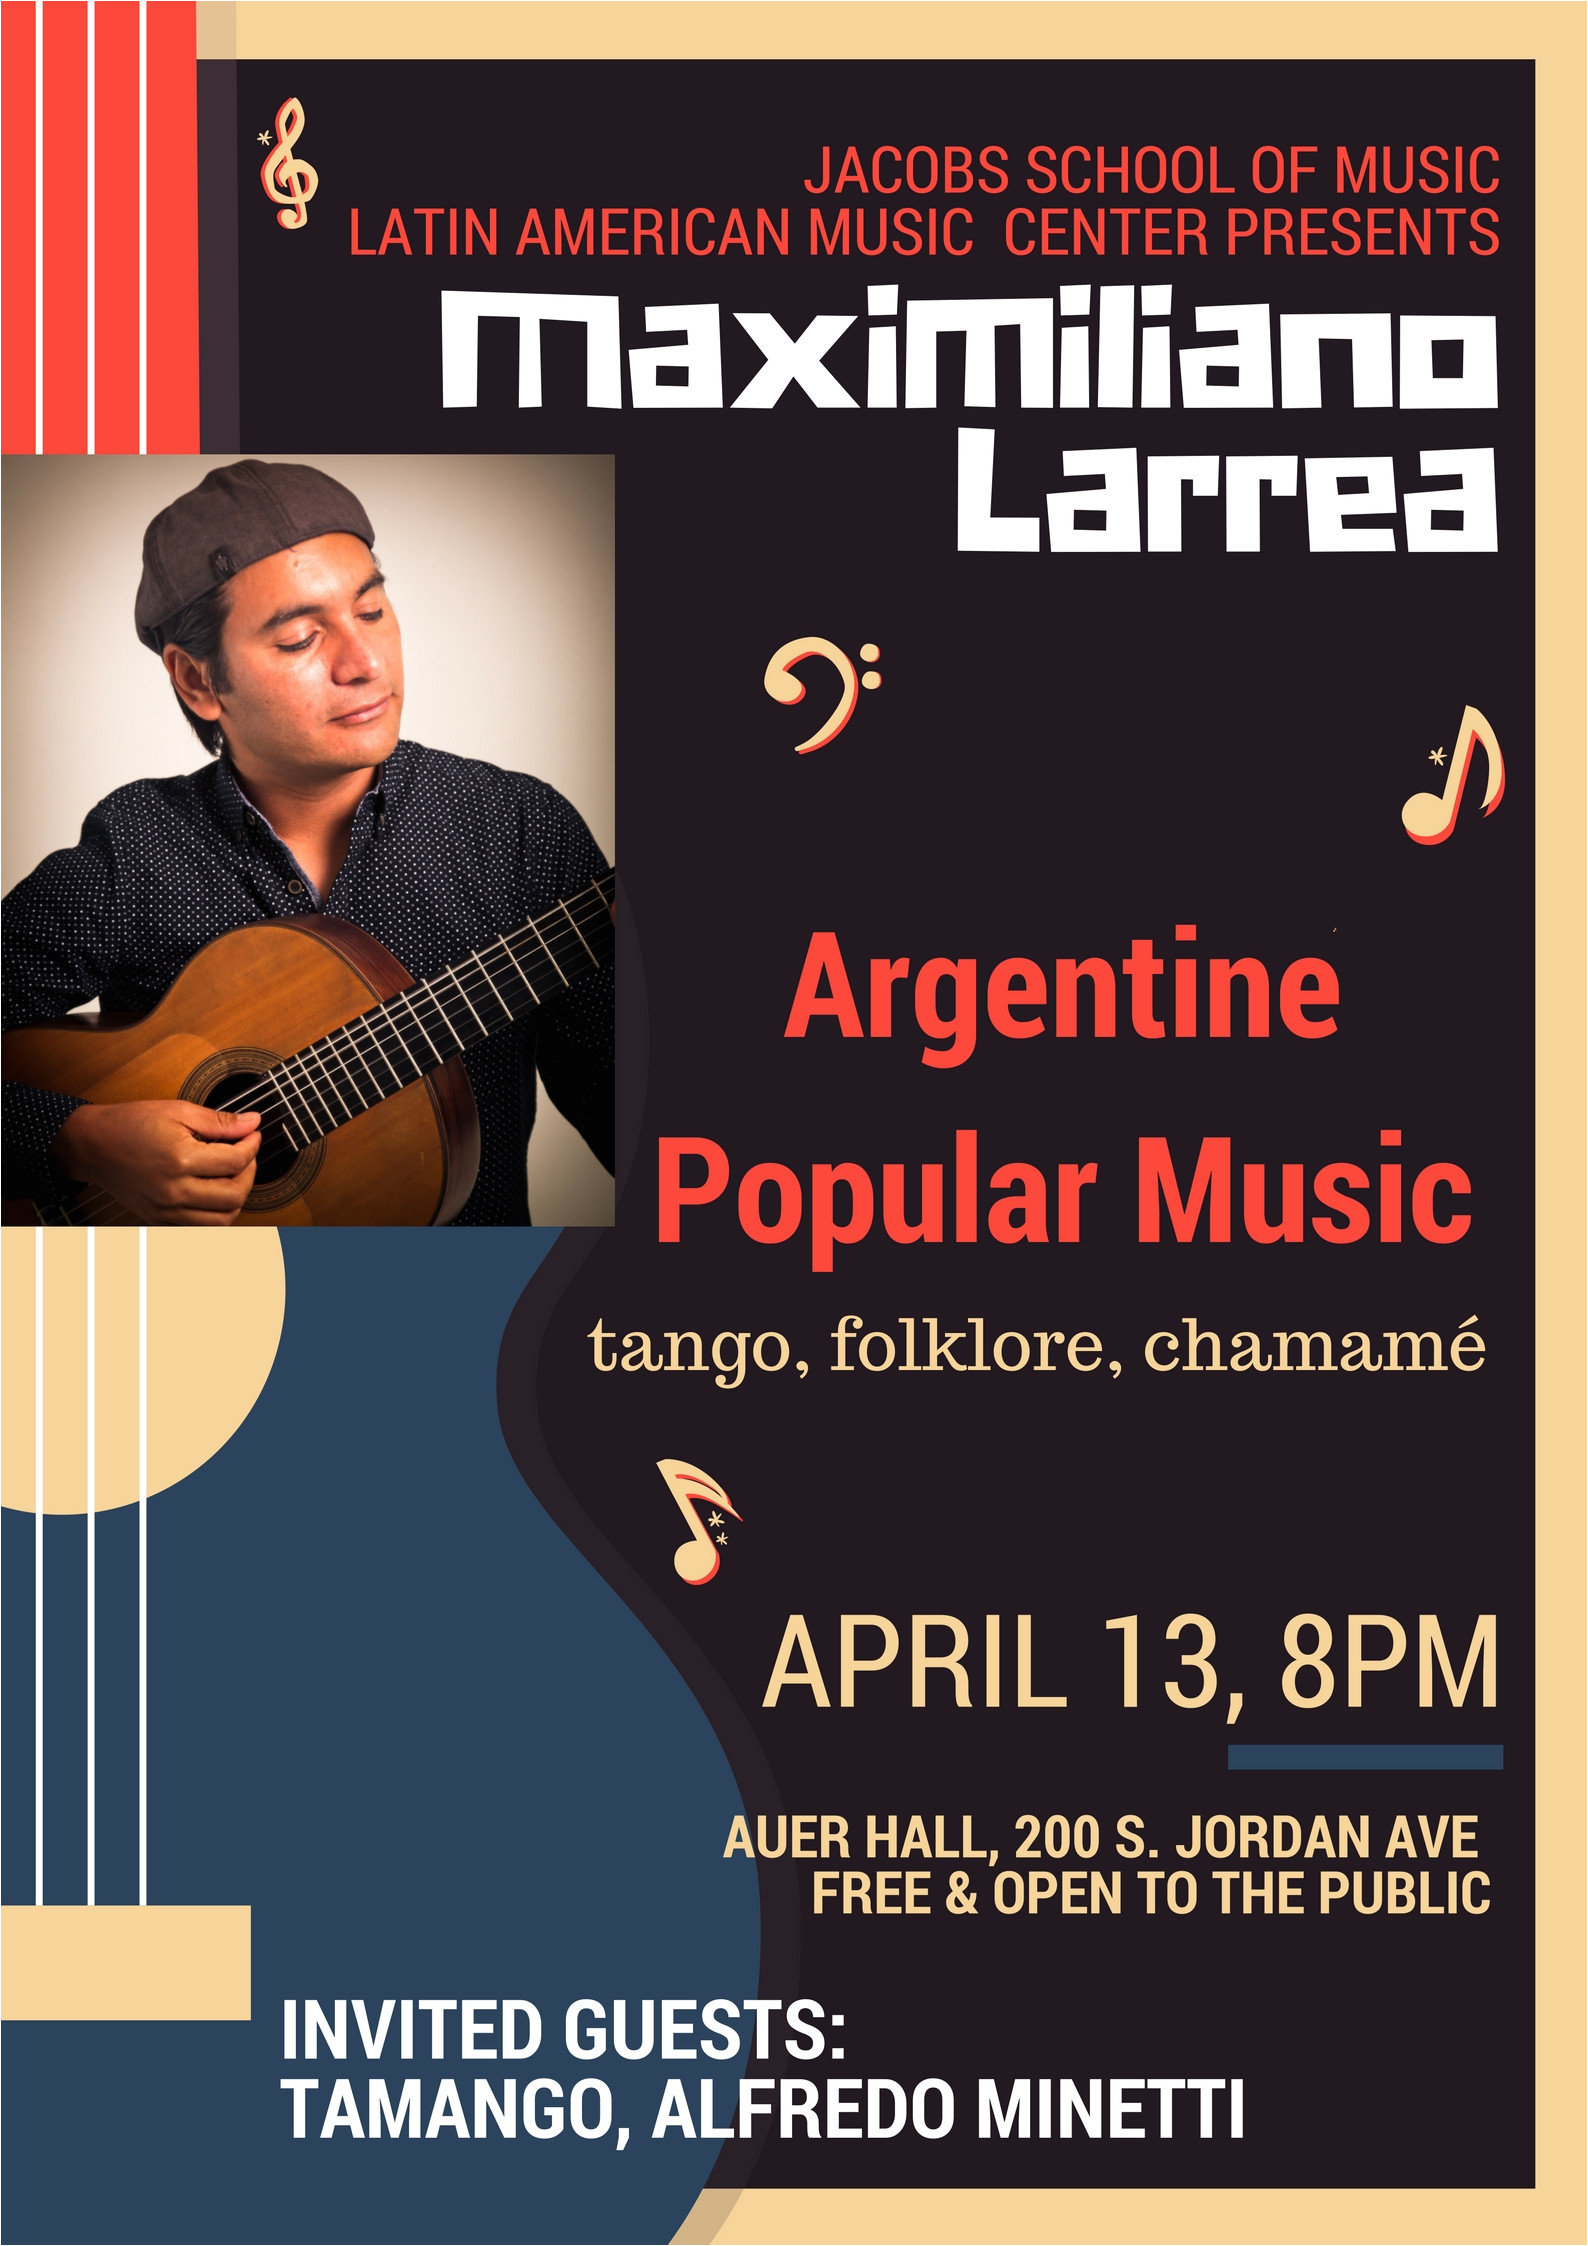 friday april 13th 8 00pm with tamango concert for maxi larrea jacobs school of music latin american center indiana university bloomington in